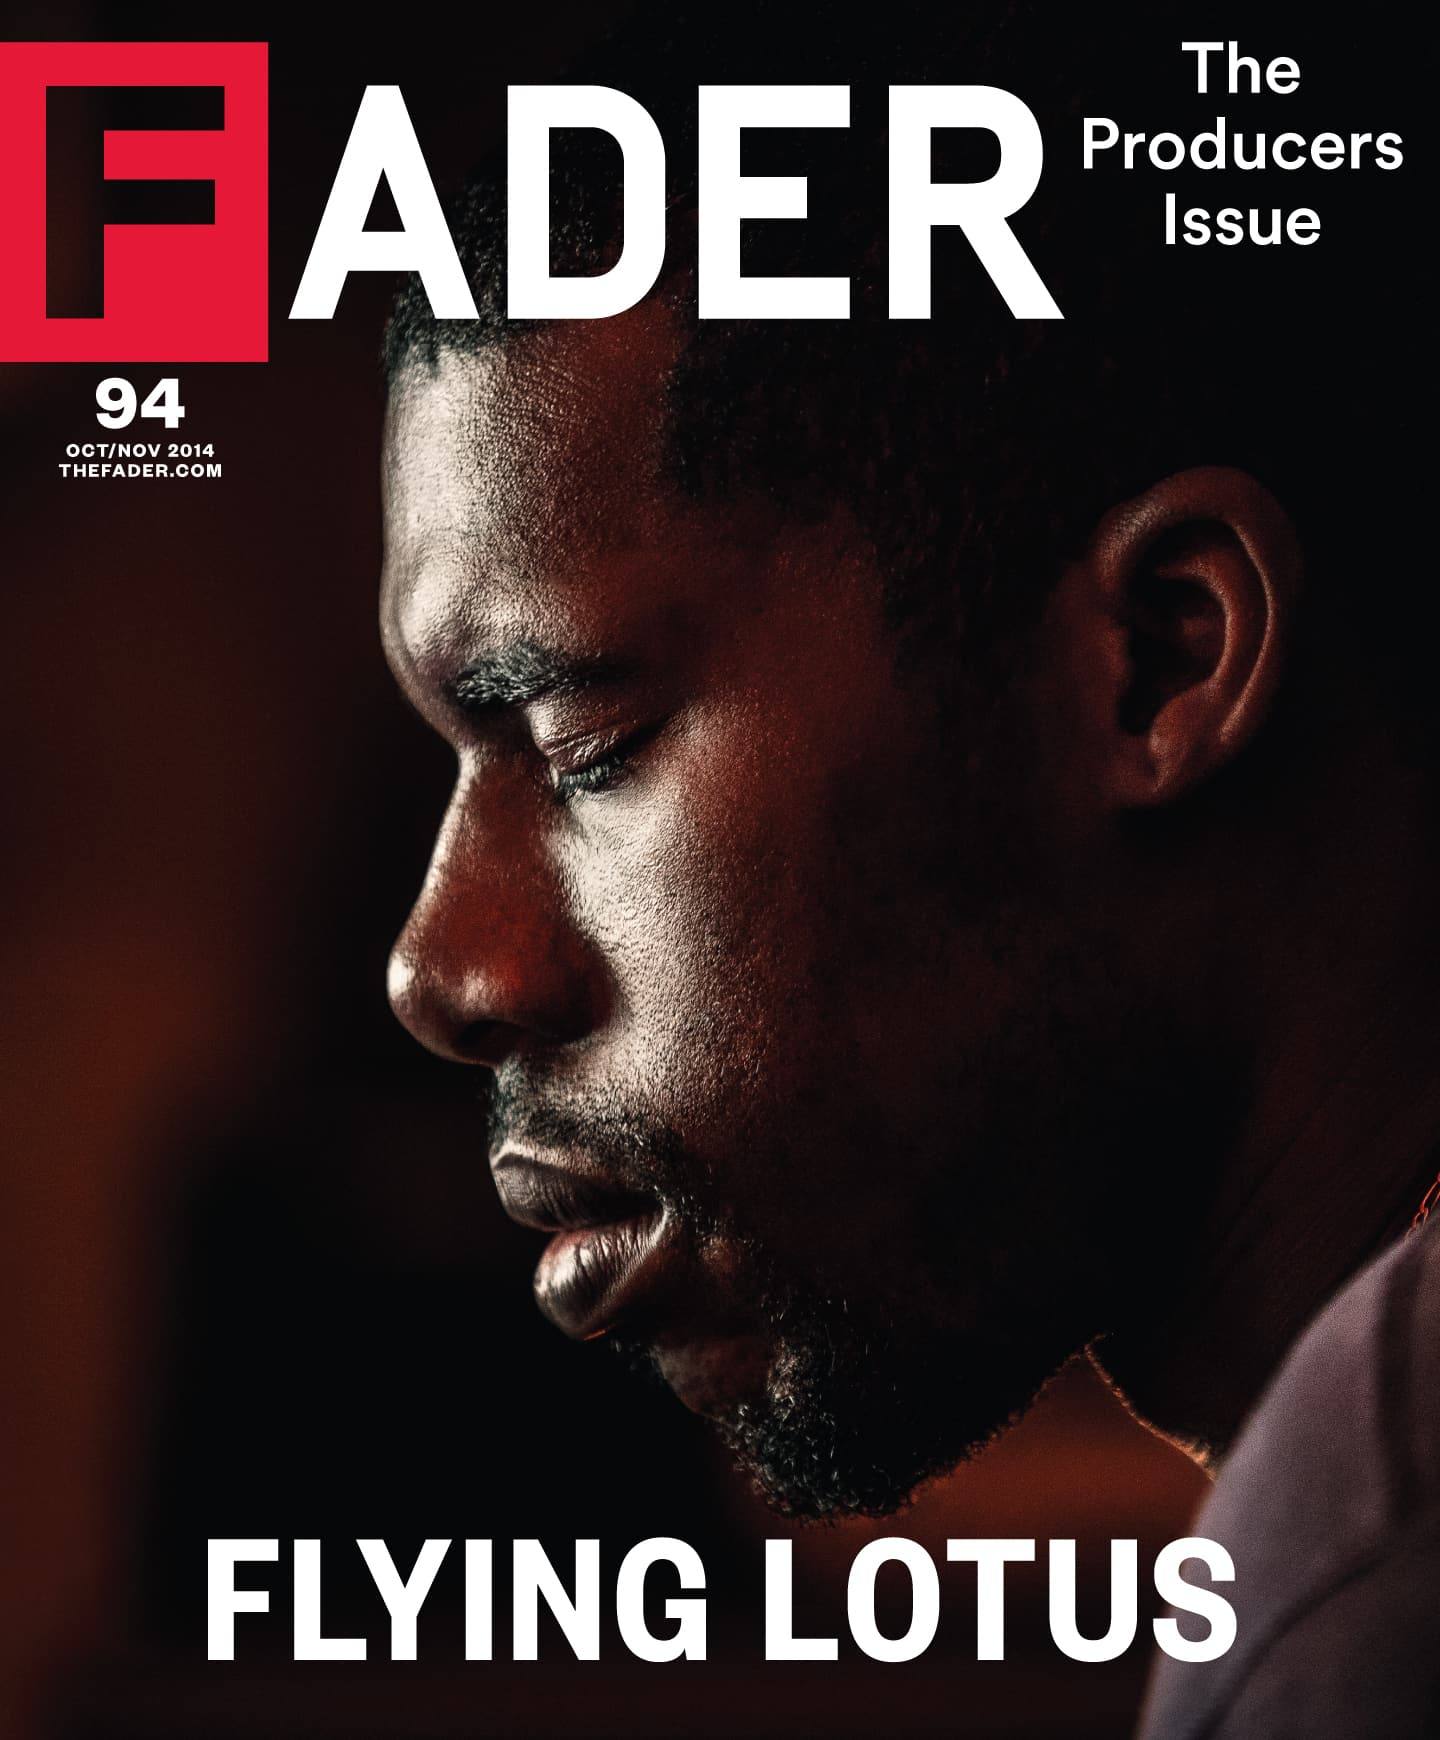 Flying Lotus Fader cover story Andy Beta Mark Mahaney